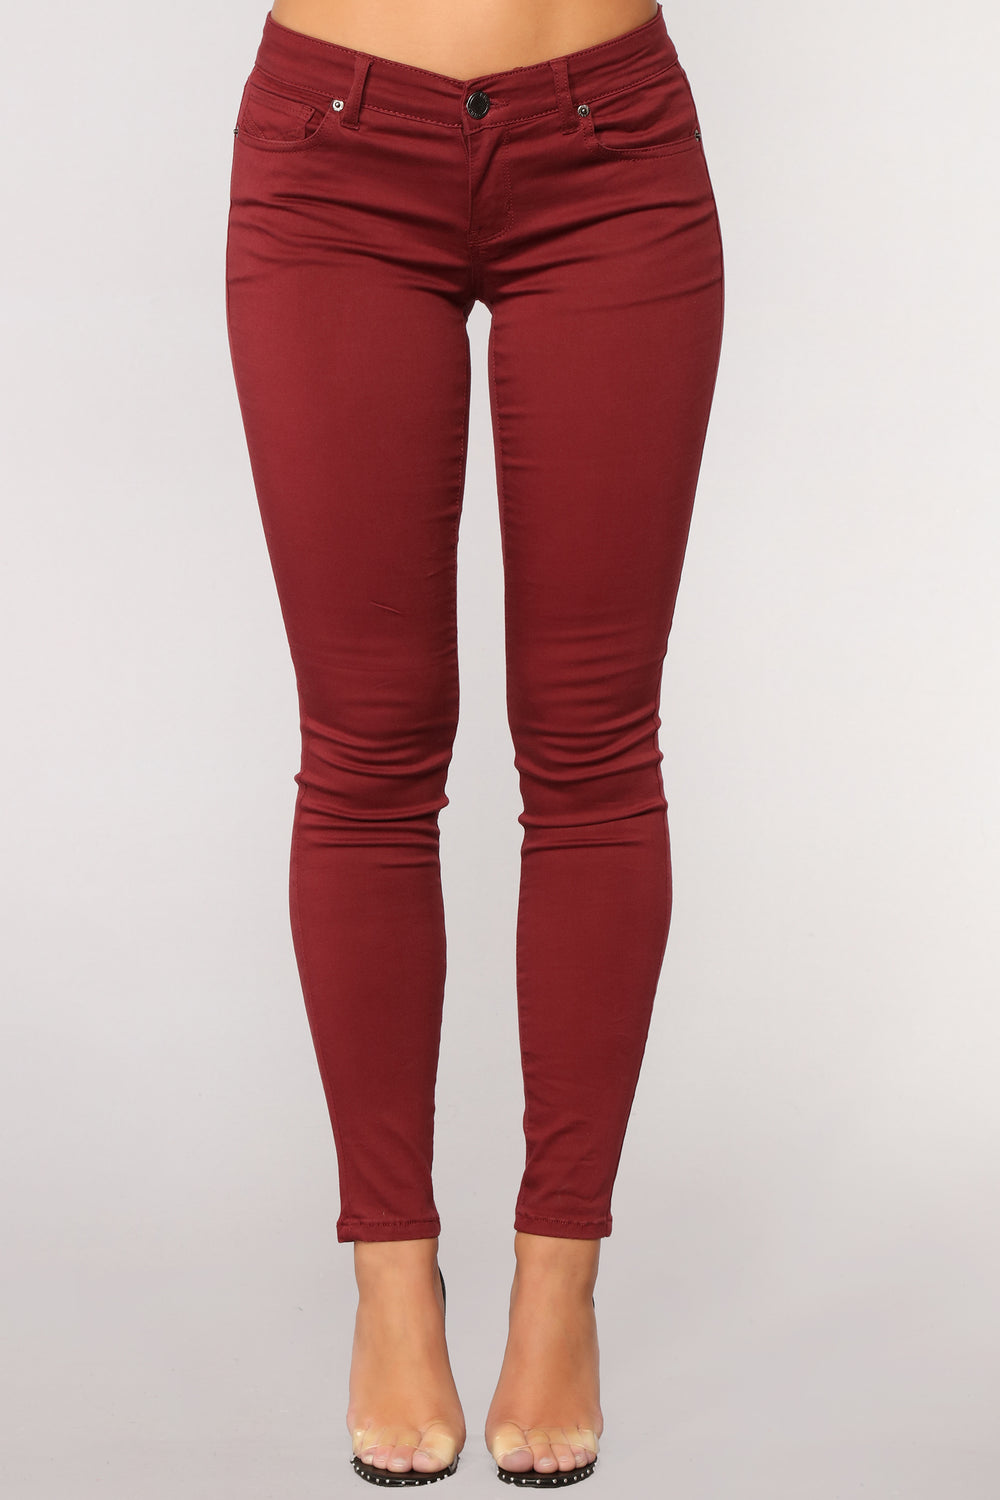 Back to Back Skinny Jeans - Wine